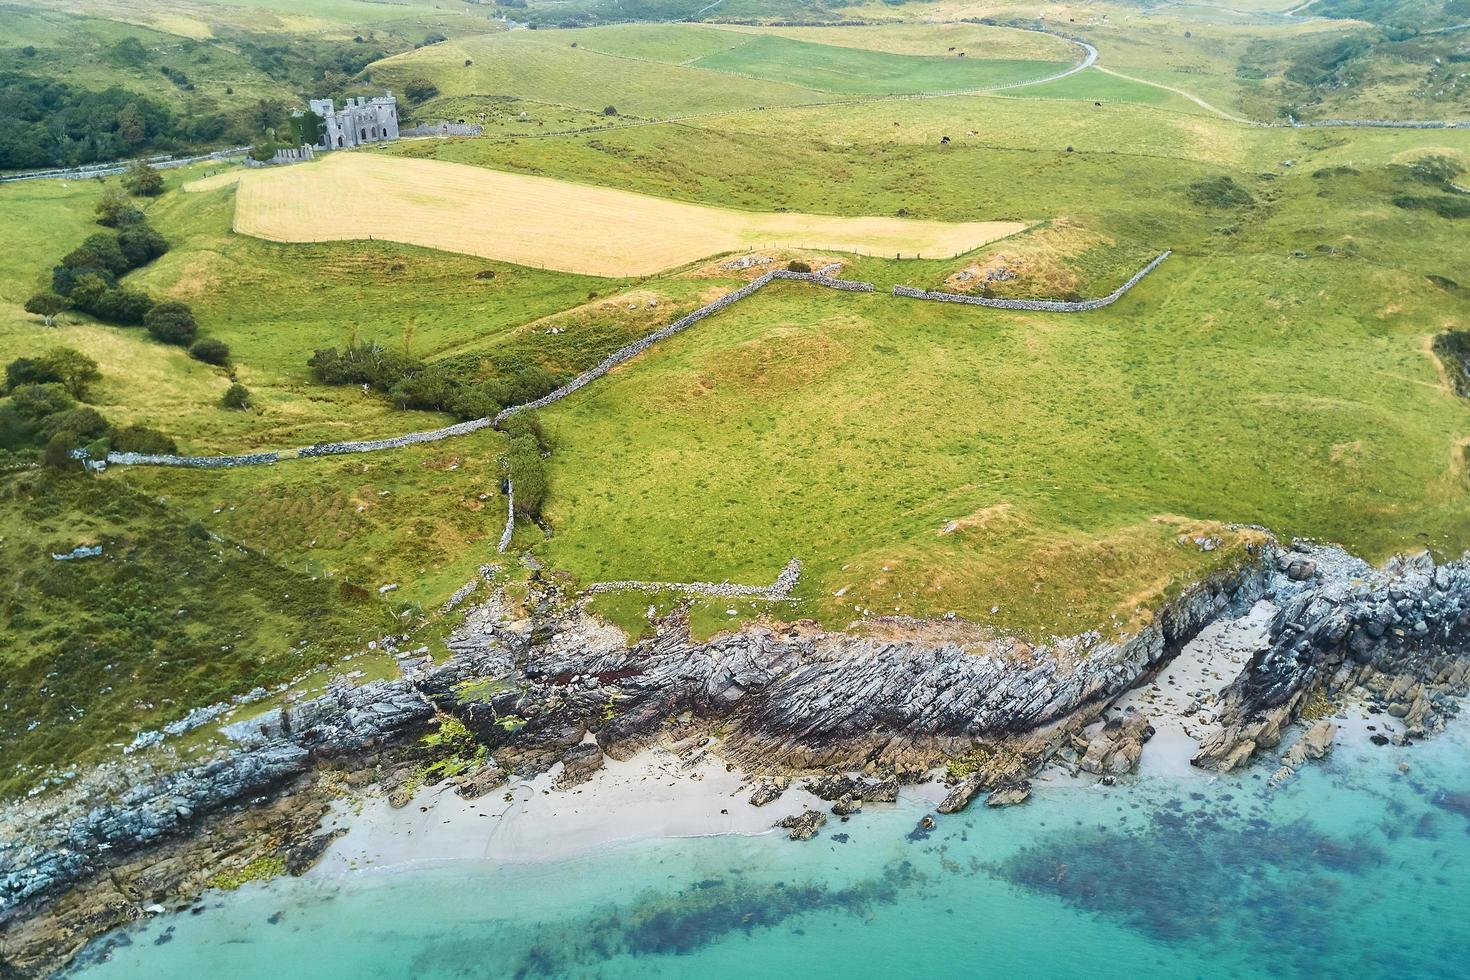 Aerial view of green grass field promontory photo